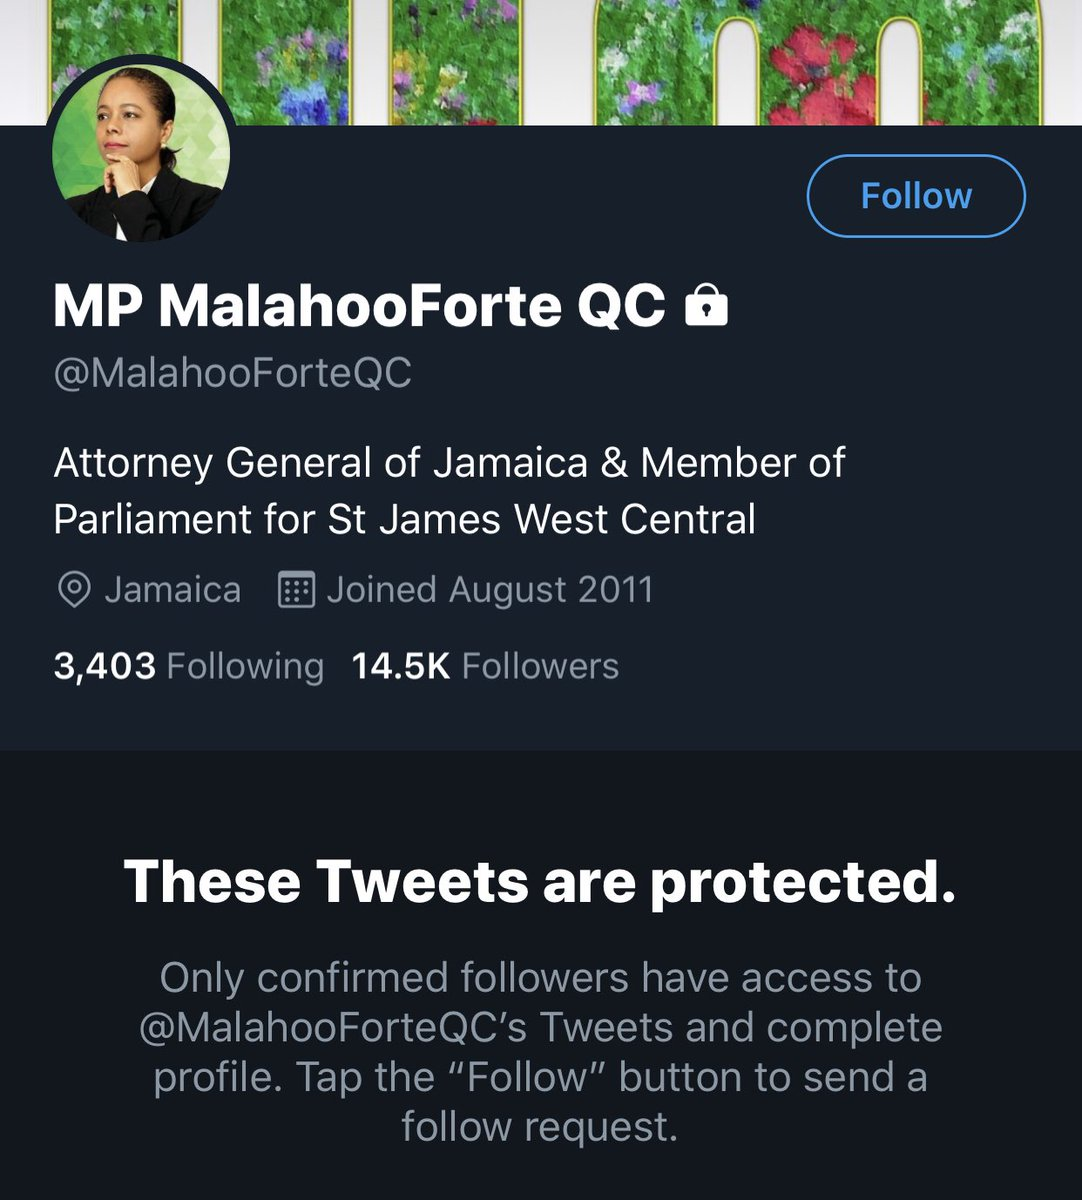 Public servant and Attorney General of Jamaica, @MalahooForteQC still has her account privated after she made light of misogynistic statements from our Minister of Justice @Delroychuckjm, just let that sink in. We need to do better #Jamaica  #MeTooJamaica #ResignNowChuckpic.twitter.com/TK2BpGHWDS